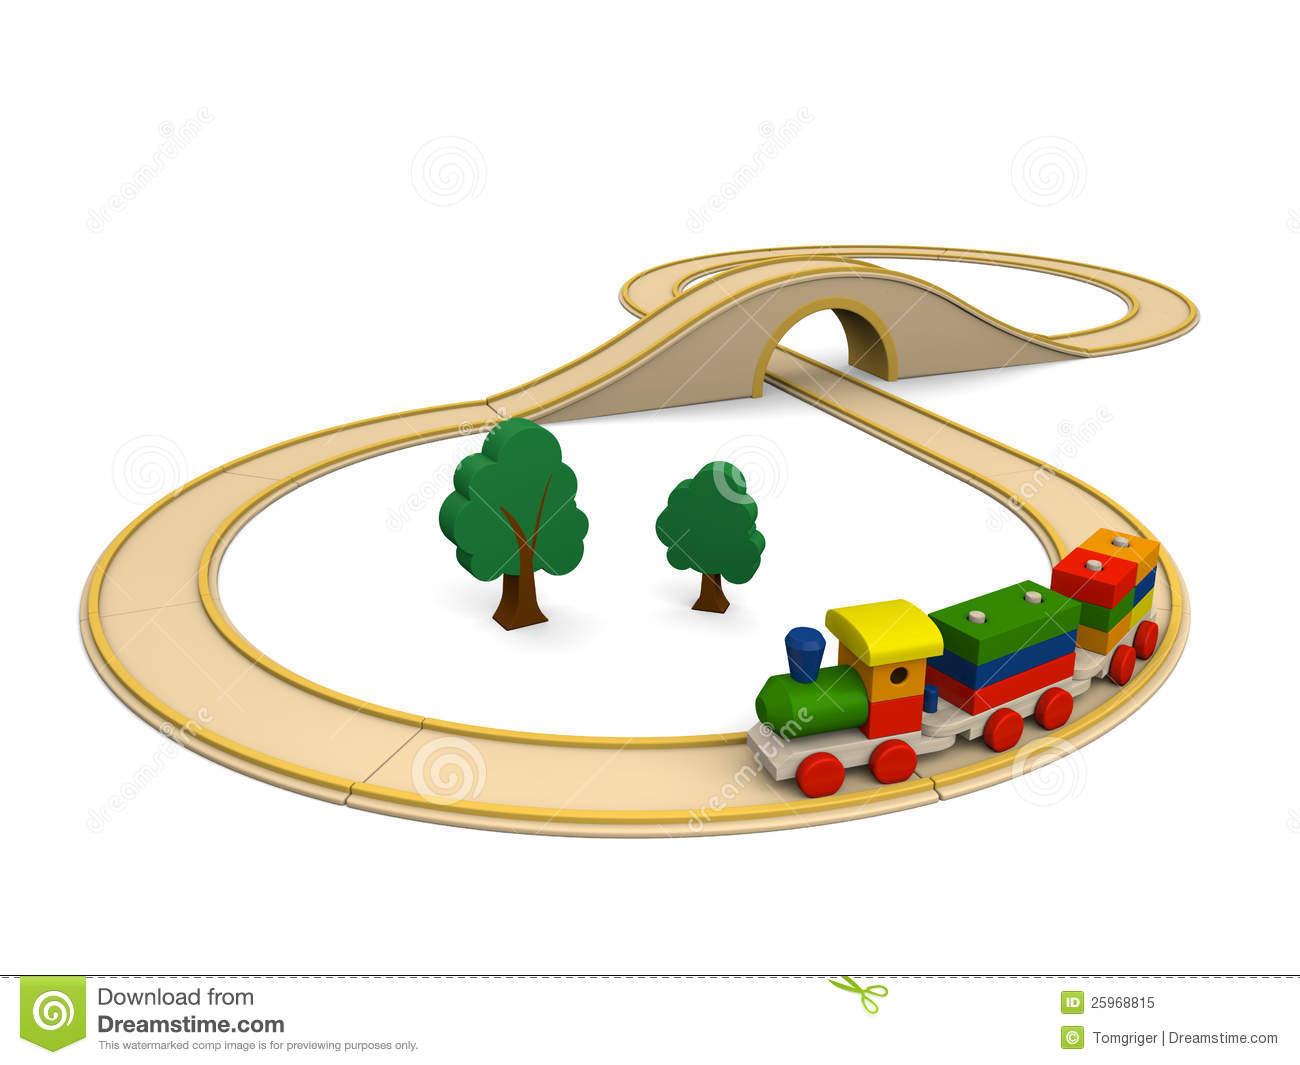 Fixie Vintage furthermore Royalty Free Stock Photo Wooden Toy Train ...